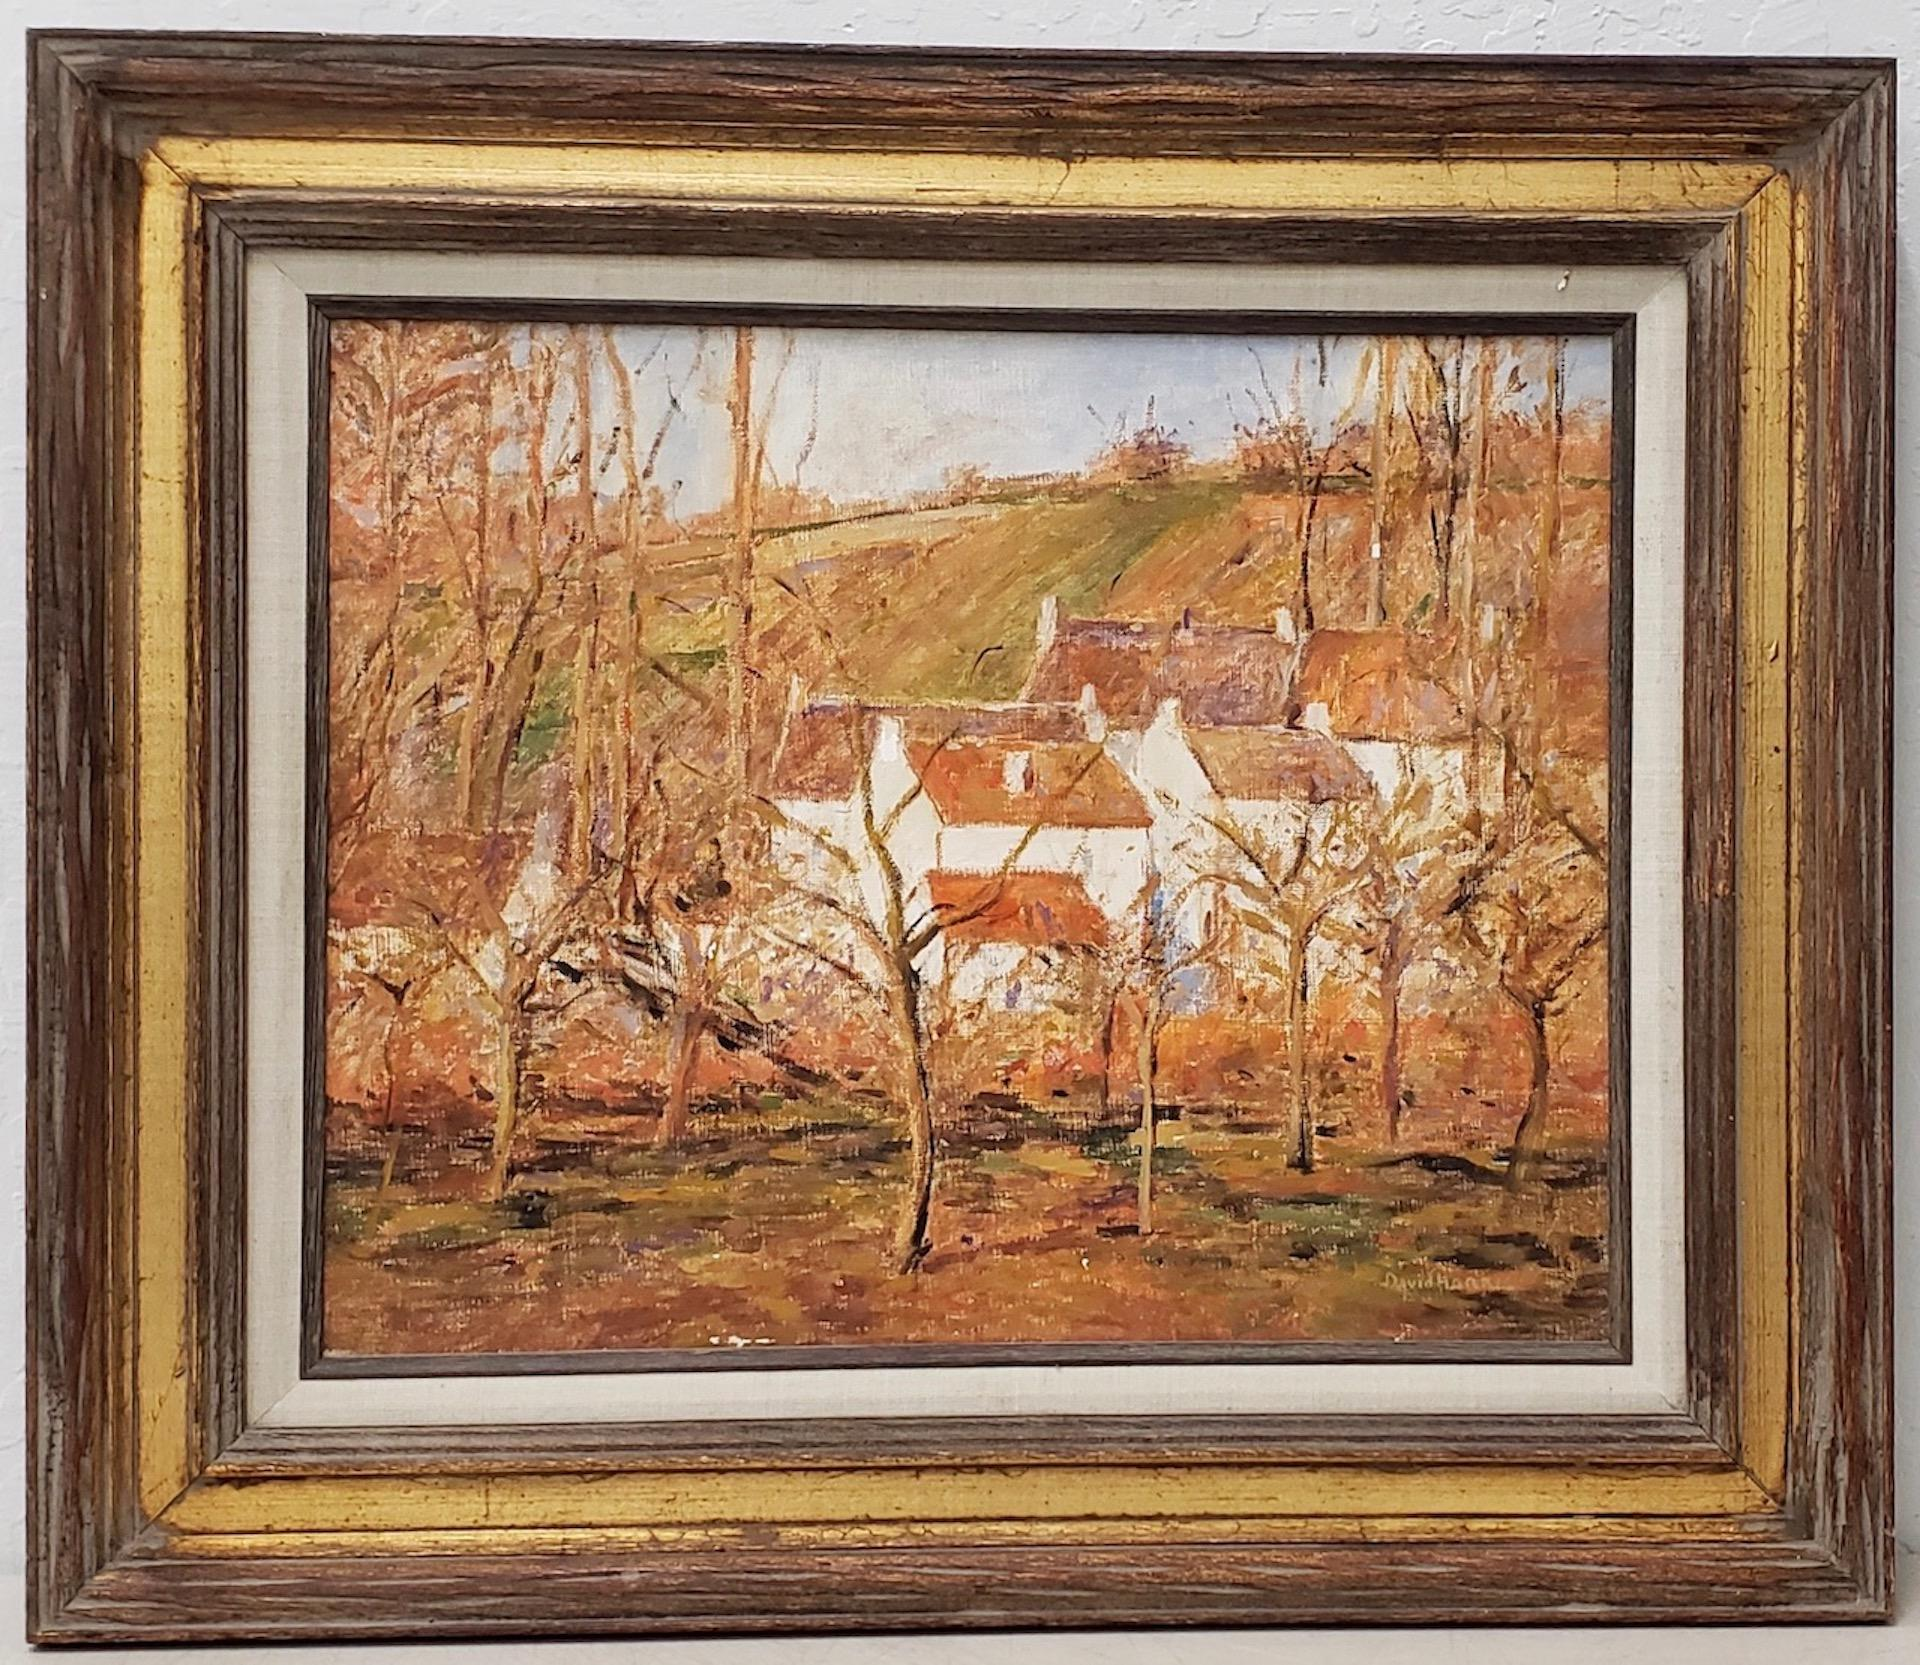 Forest View of a Village in Normandy by David Harris (American, 20th c.)